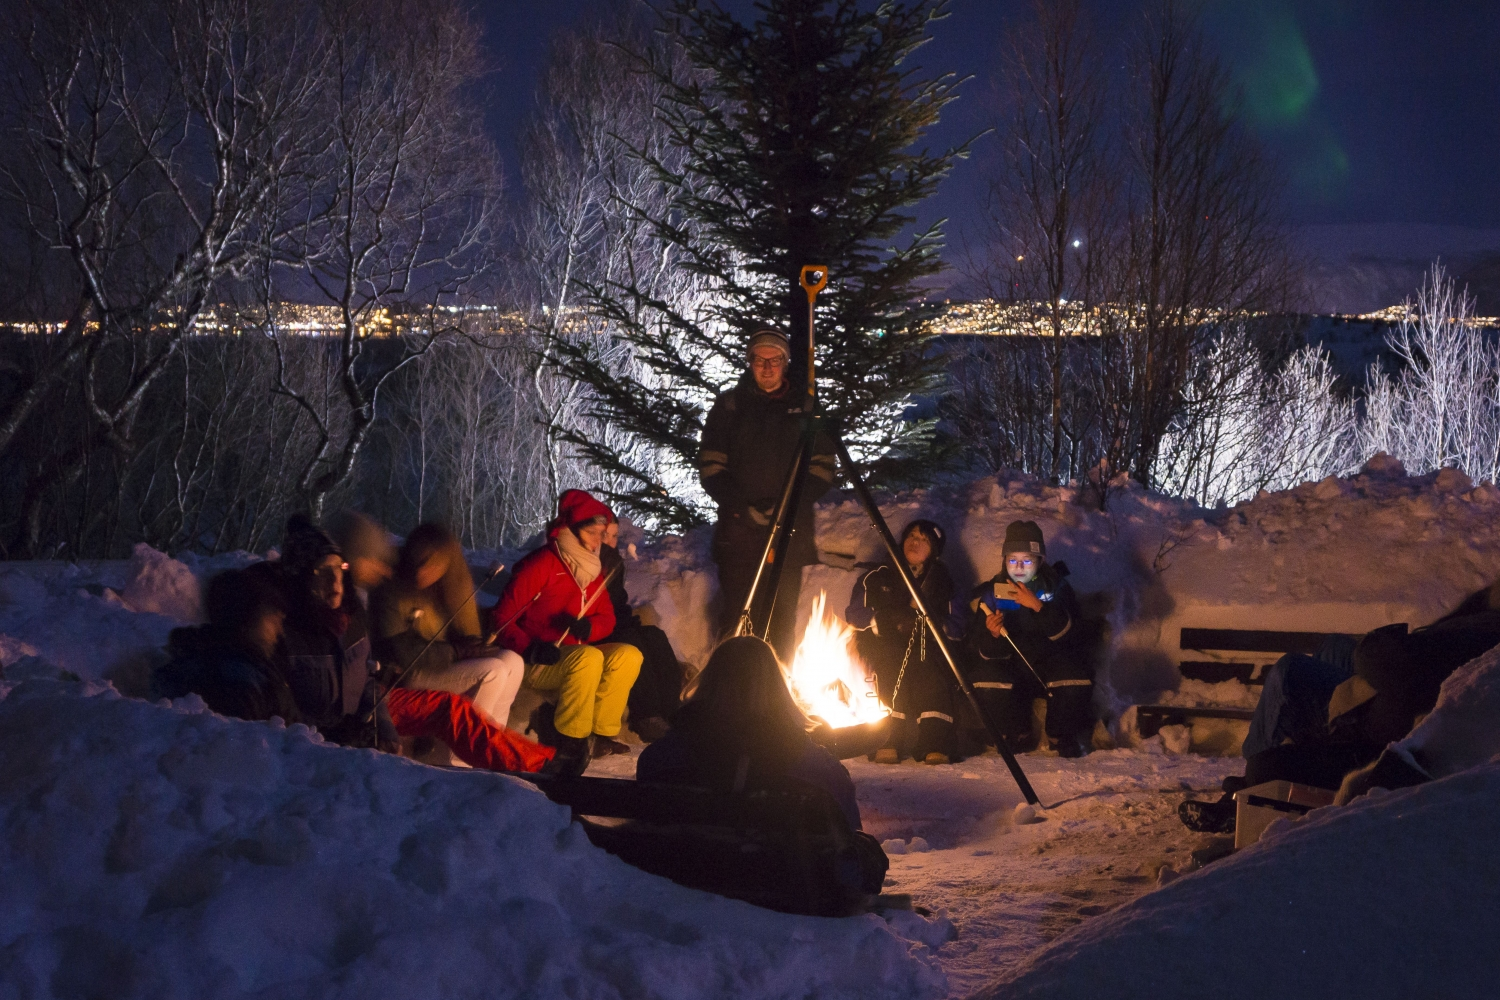 Guests gathered around the bonfire in snowy landscape